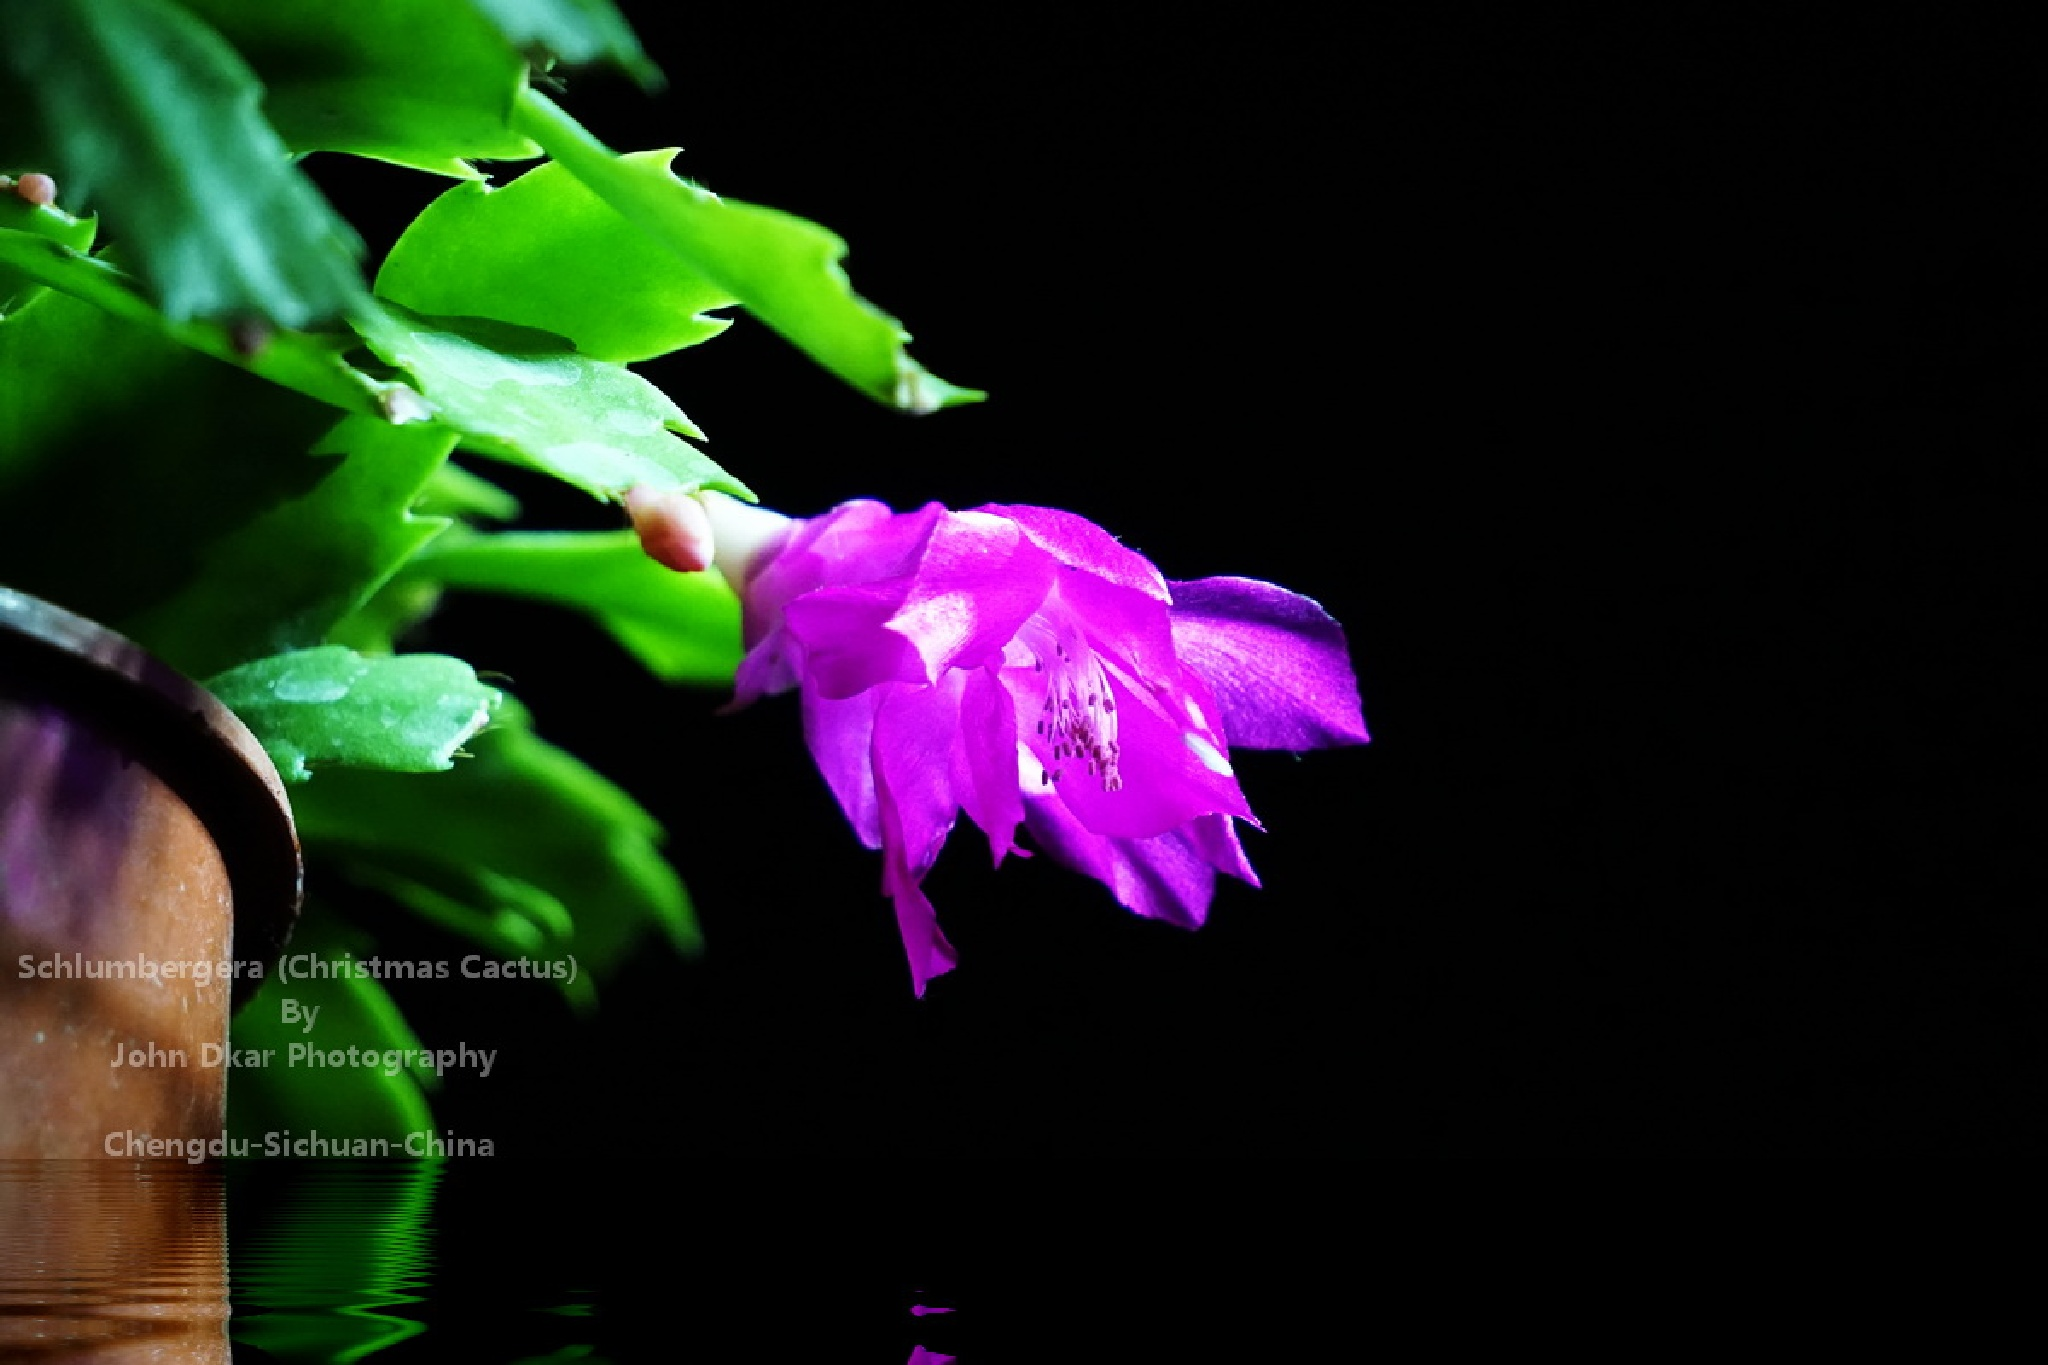 Flowers adapted to Chengdu Sichuan China climate (0002) by JohnDkar